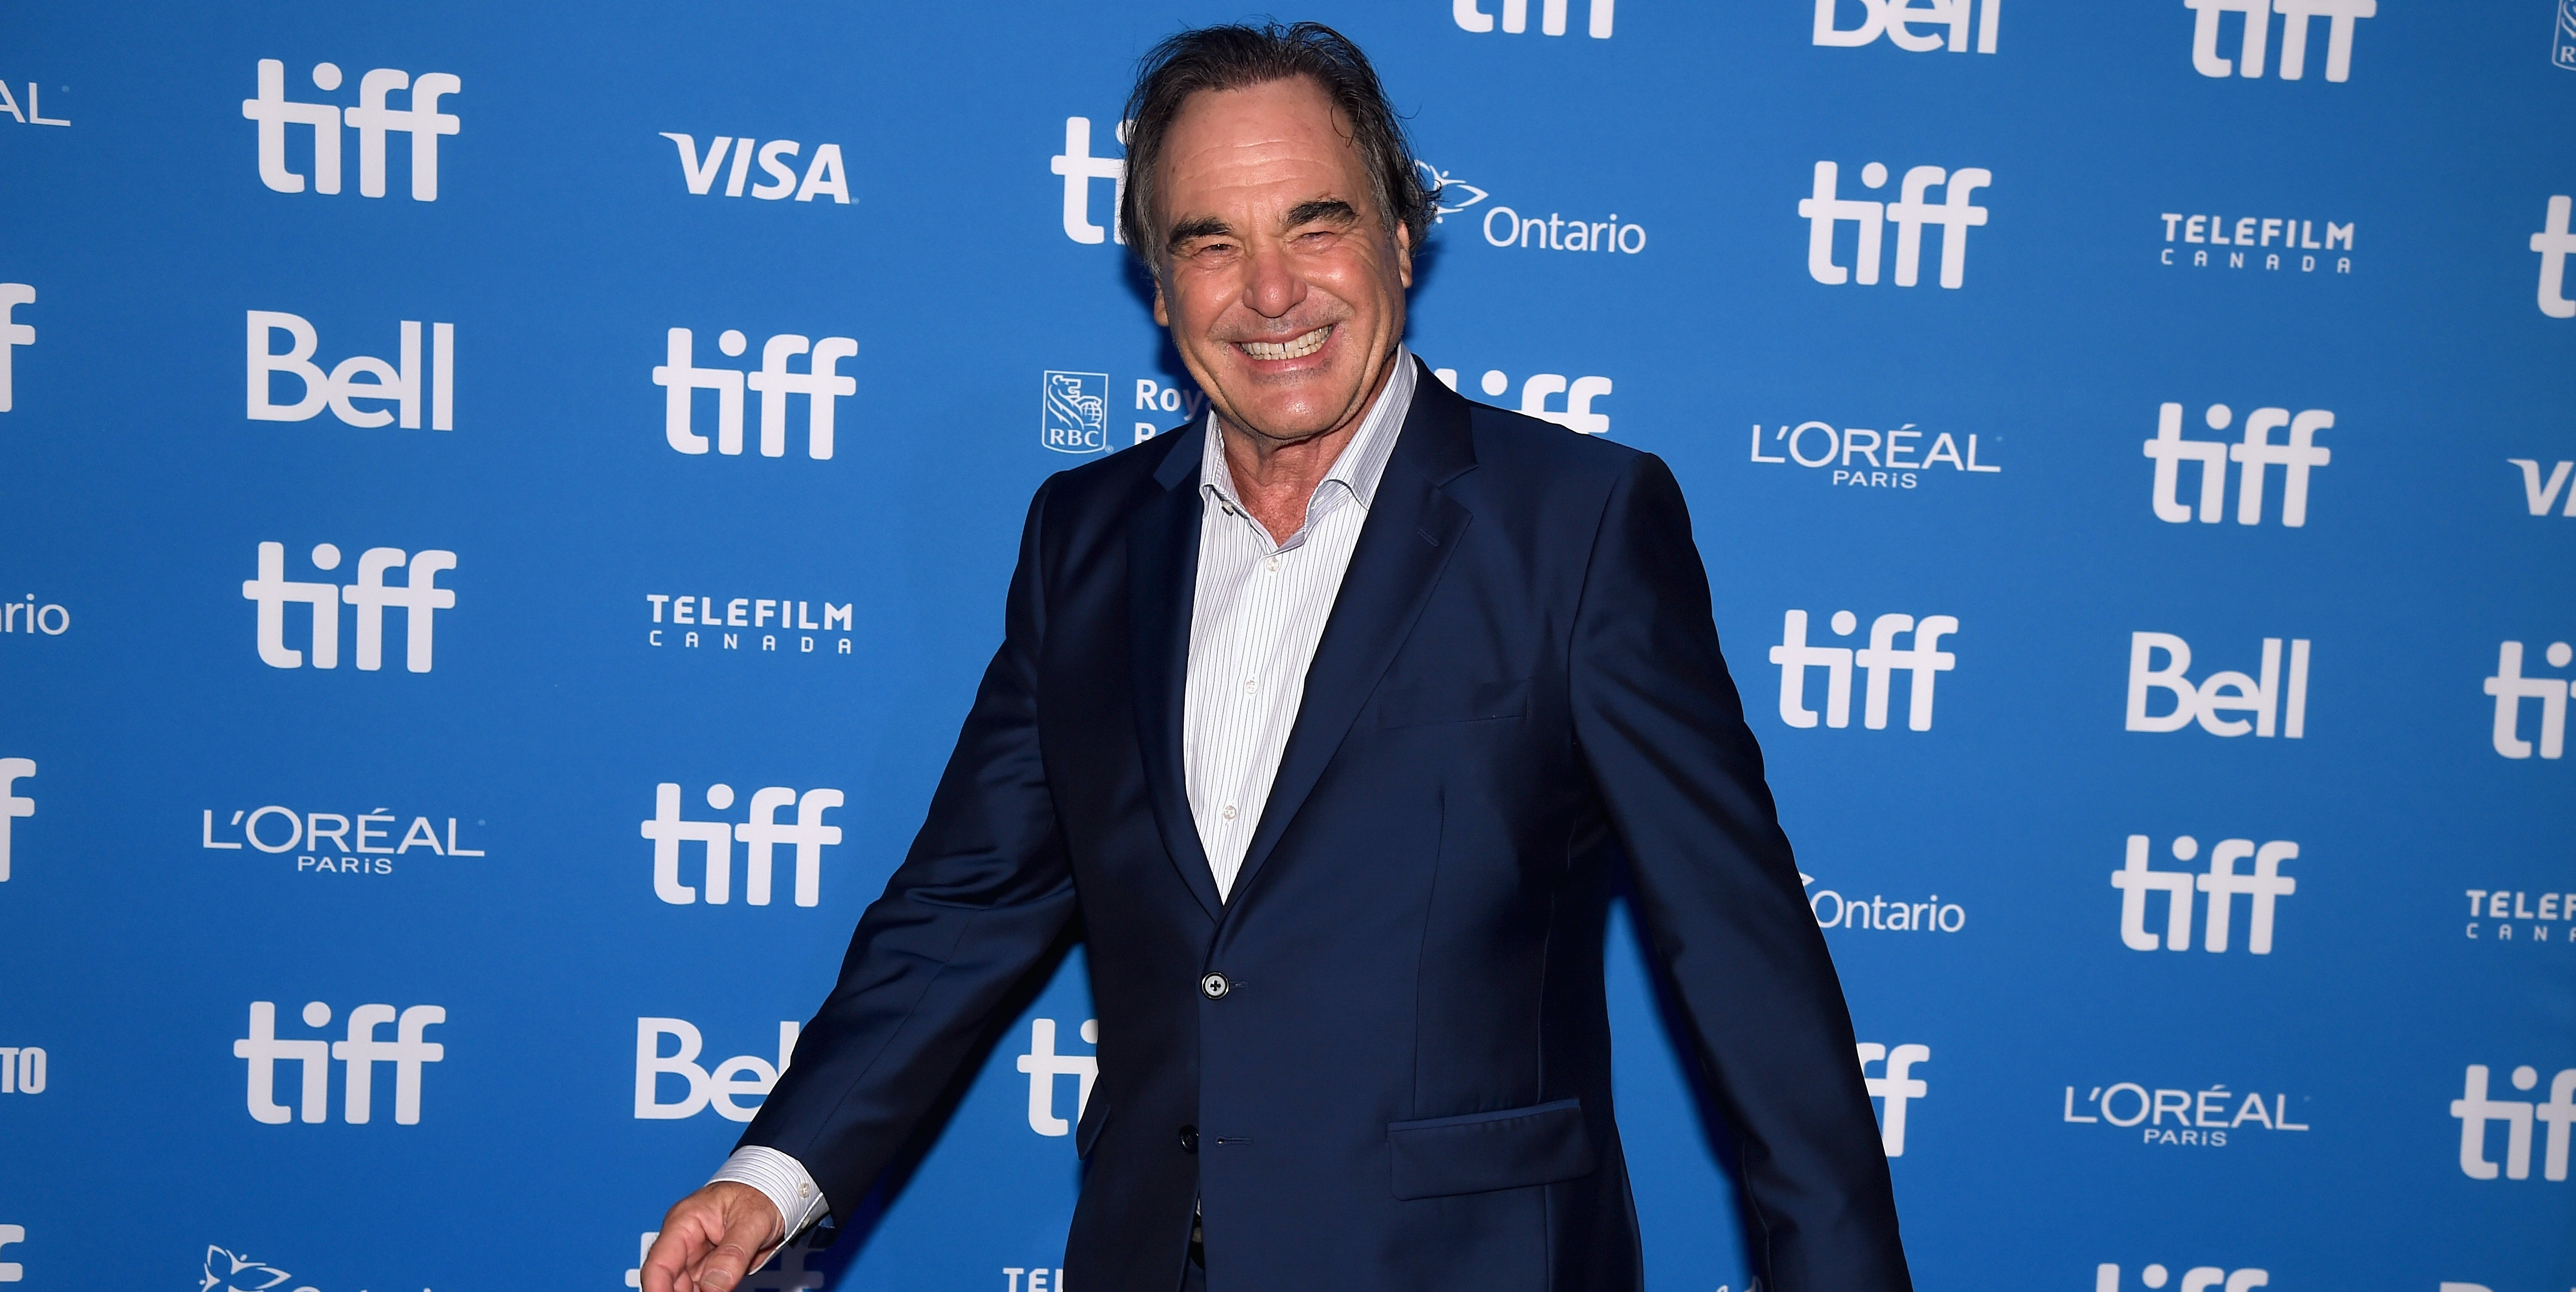 TORONTO, ON - SEPTEMBER 10:  Director Oliver Stone attends 'Snowden' press conference during the 2016 Toronto International Film Festival at TIFF Bell Lightbox on September 10, 2016 in Toronto, Canada.  (Photo by Kevin Winter/Getty Images)